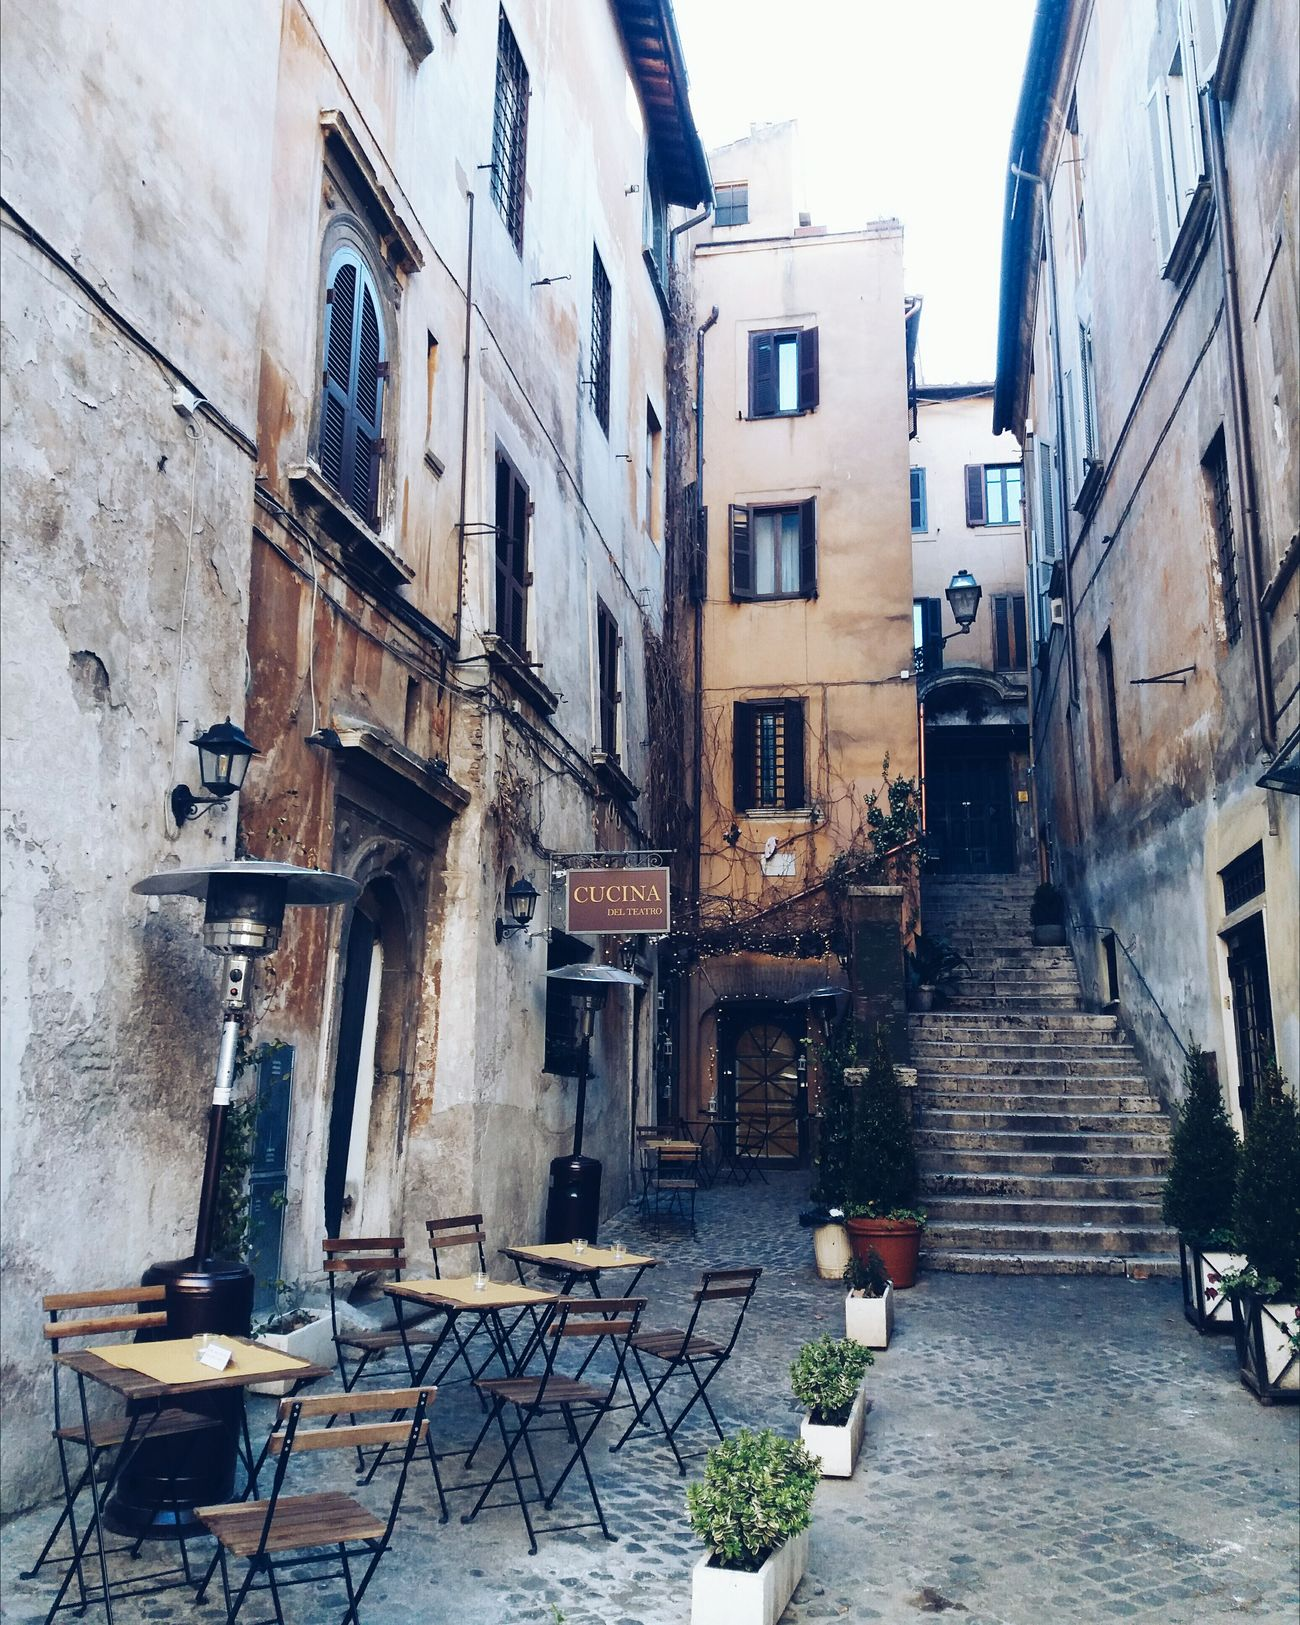 Building Exterior Architecture Built Structure City Outdoors Steps Day No People Sky Cloud - Sky Water Travel Rome Rome Italy Romestreets Rome View Rome, Italy Rome Italy🇮🇹 Rome Through My Eyes Rome_bigcity Rome By Night Romeandyou Rome Wasn't Built In A Day Rome Street Close-up